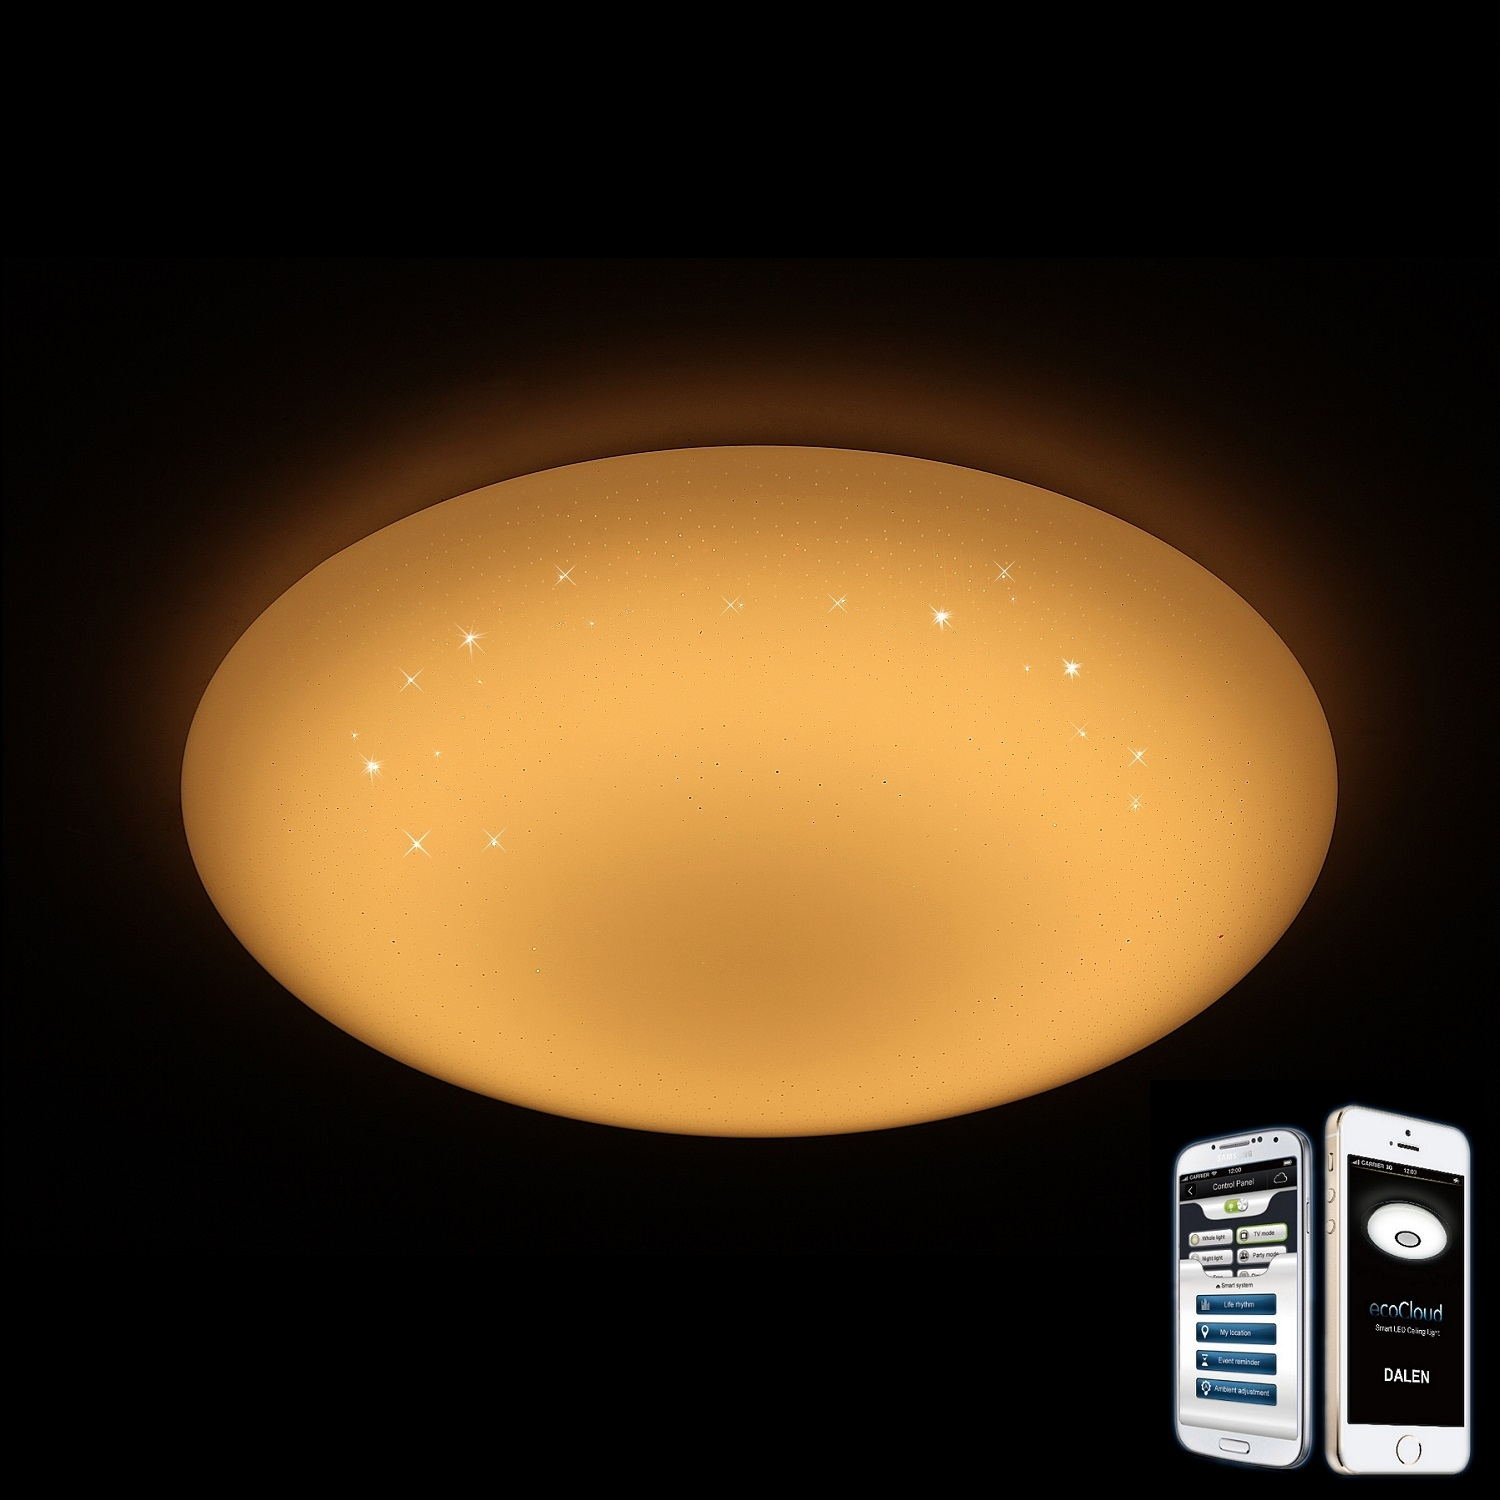 Dalen Dl C405txw Intelligent Eco Led Ceiling Light